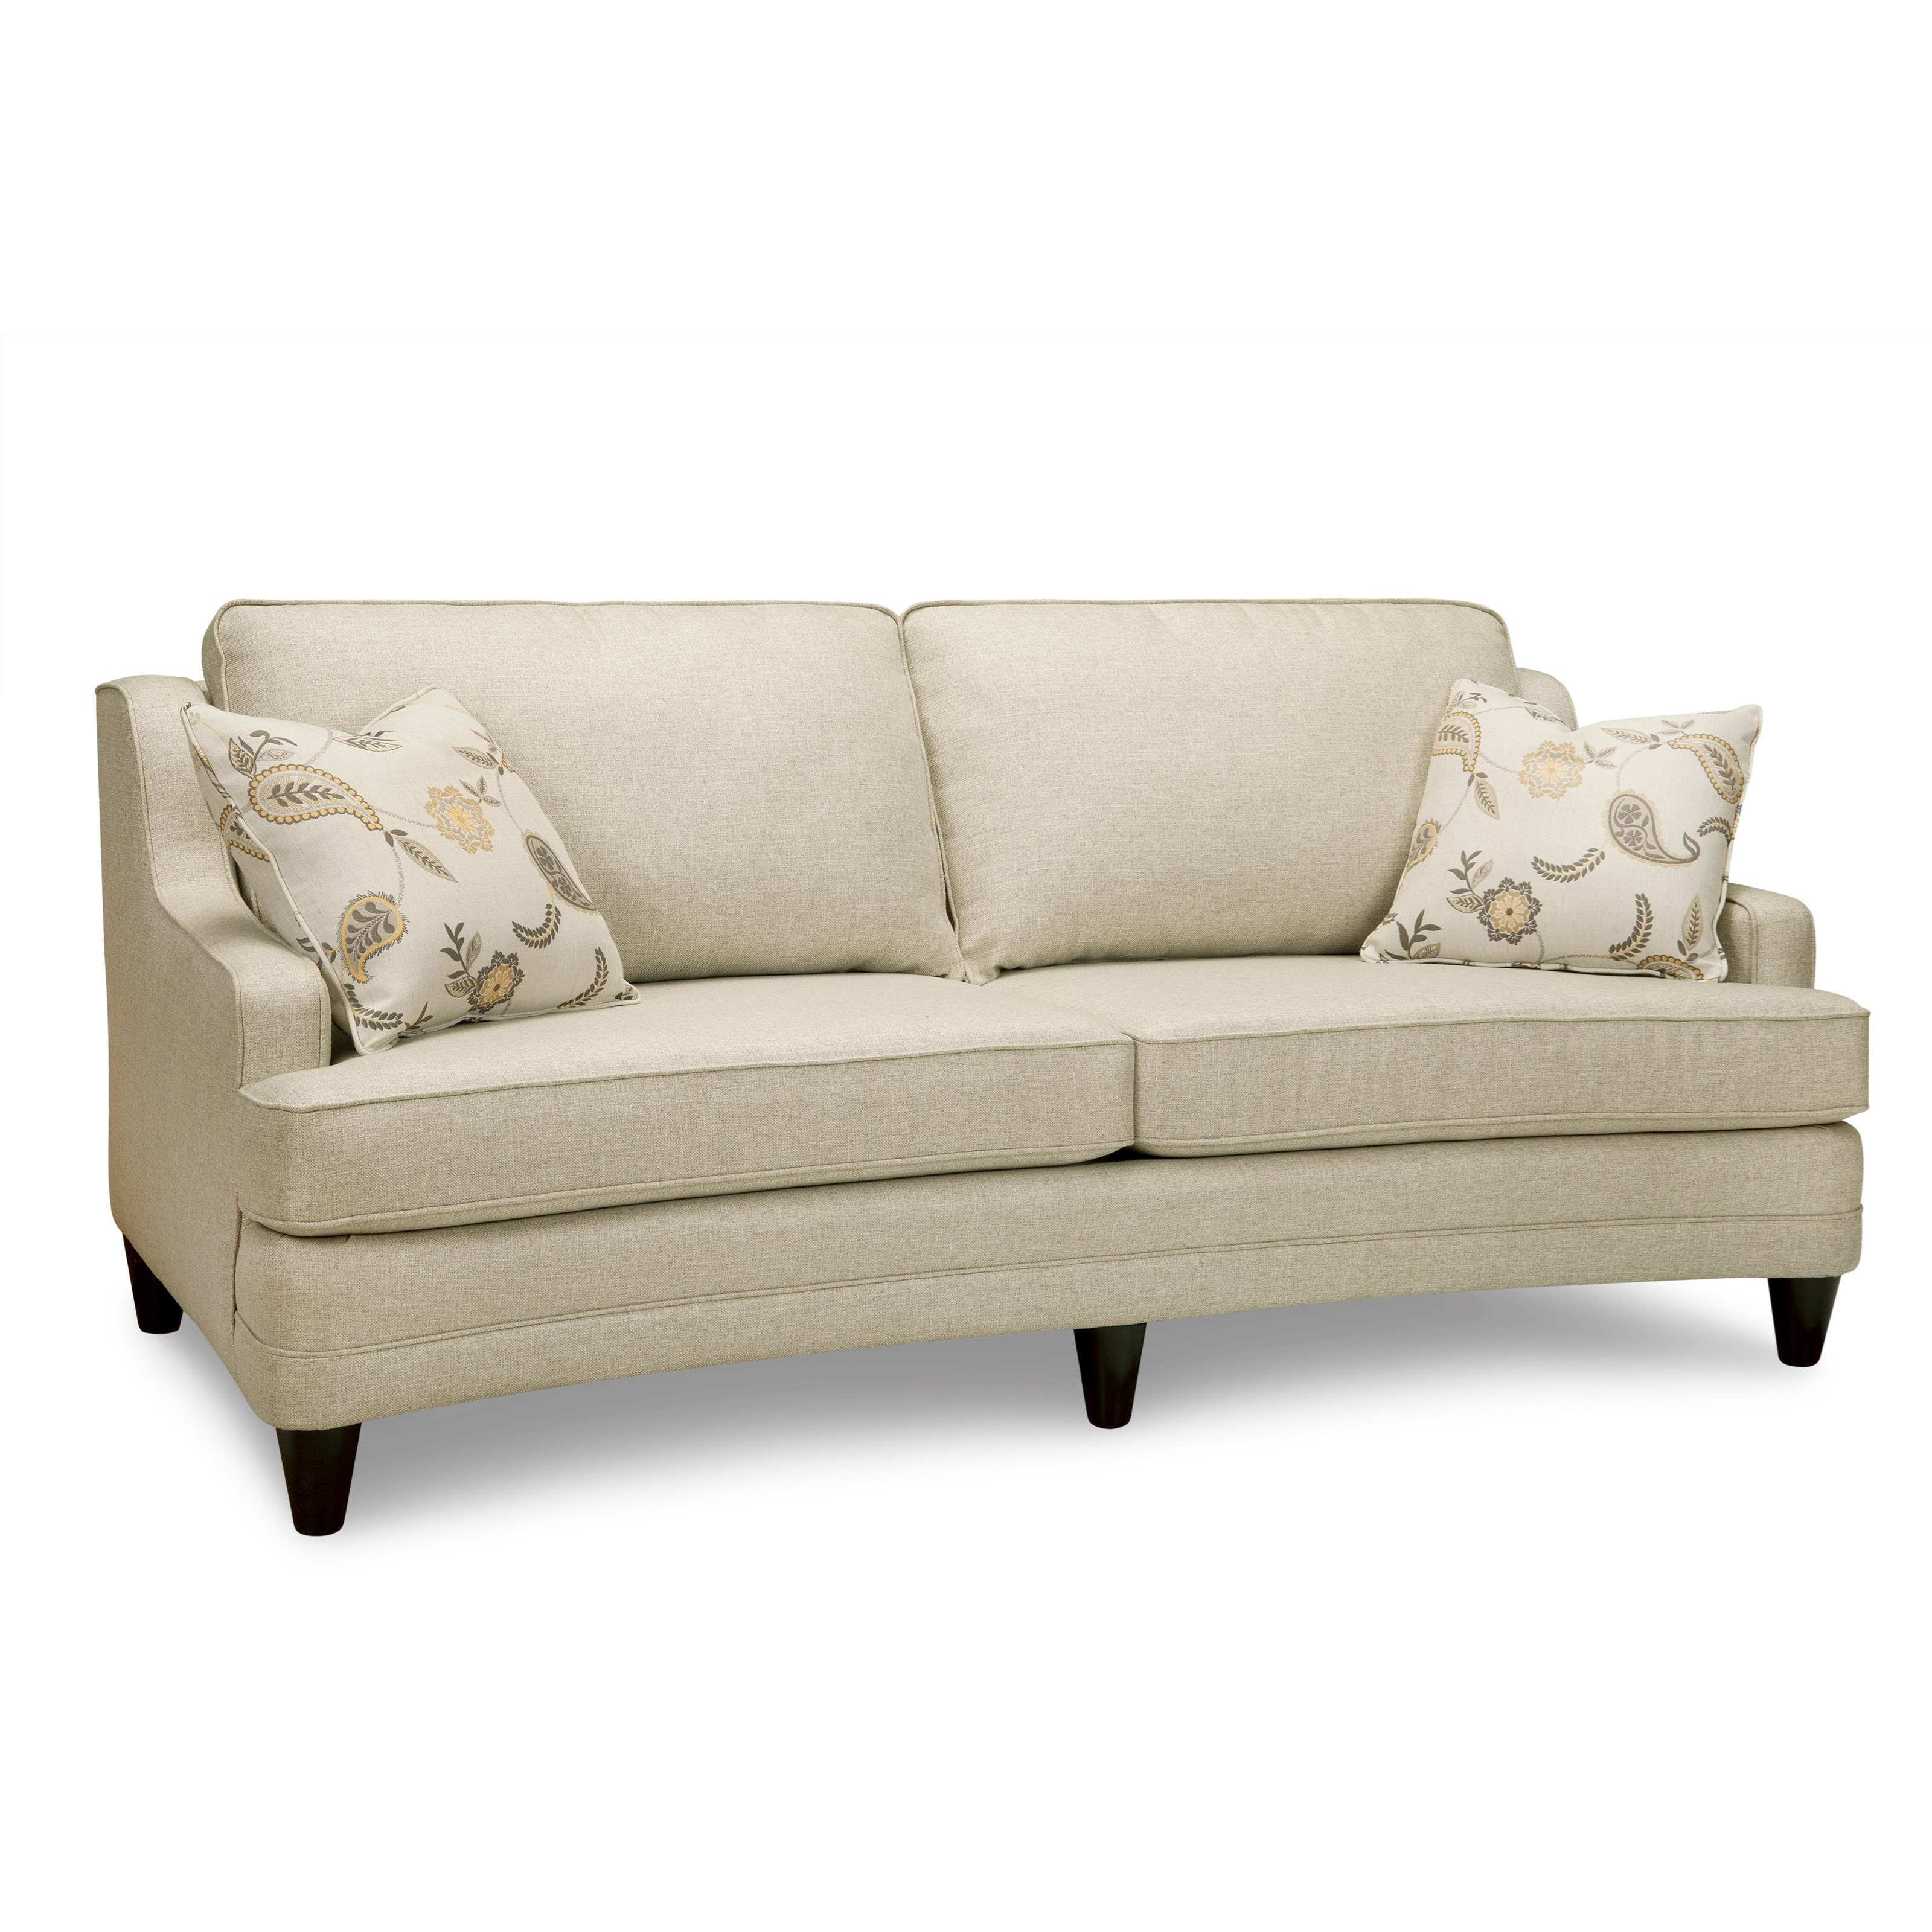 Sectional Couch In Toronto: Superstyle 9691 Curved Condo Sofa